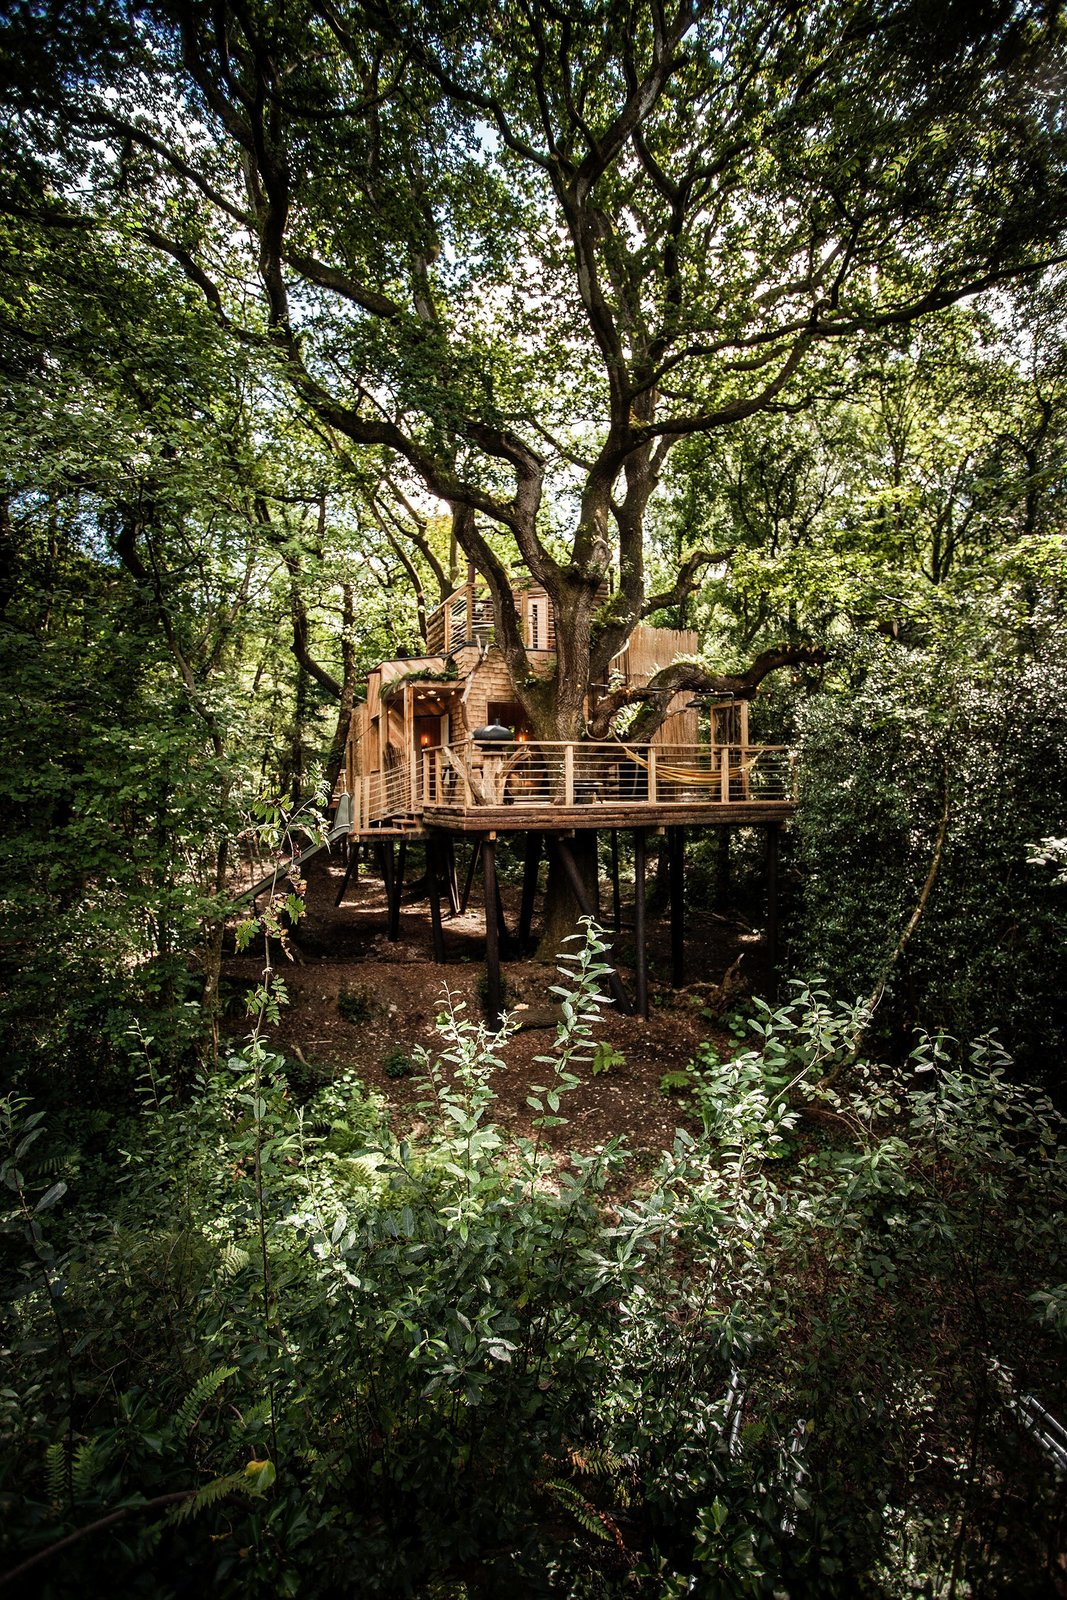 Part of an eco-friendly glamping retreat in Dorset, UK, Woodman's Treehouse is built using local materials where possible and includes traditional wooden craftsmanship throughout the interior. The structure stands on high stilts to minimize its effect on the land, and all the existing trees are protected and maintained unharmed and untouched.  Photo 6 of 6 in The Woodman's Treehouse